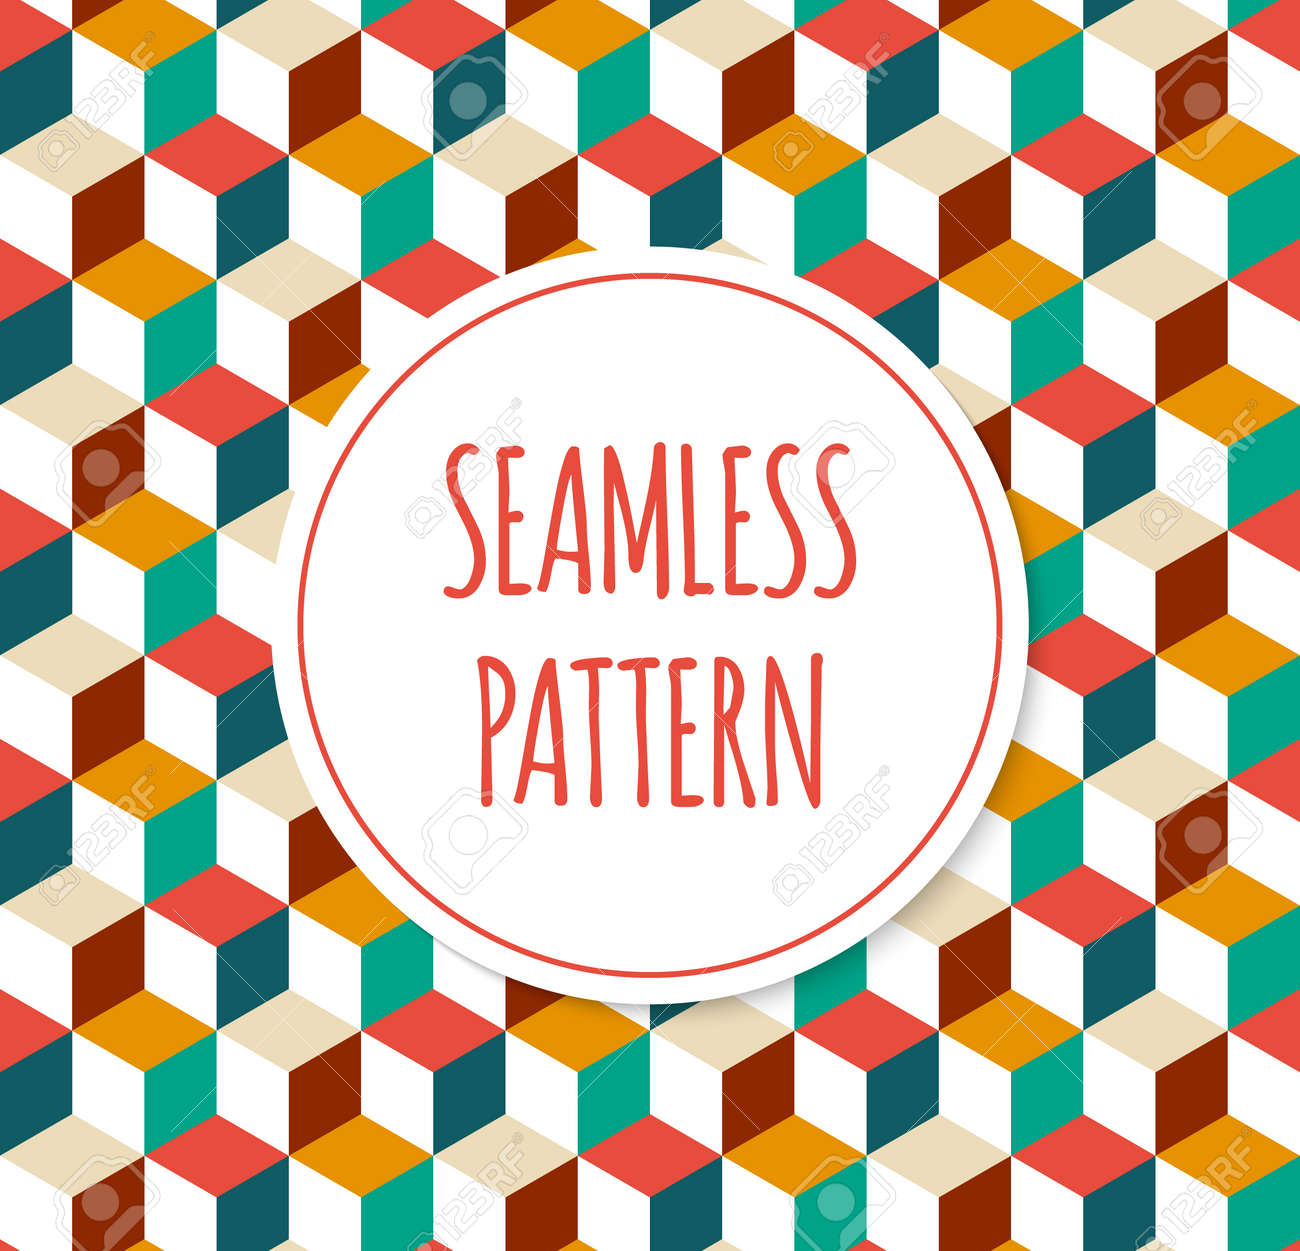 Seamless vector geometric pattern background with colorful cubes or squares. Pattern of geometric shapes. Retro style tile. Decorative background for cards, invitations, fabric, web design. - 50264767